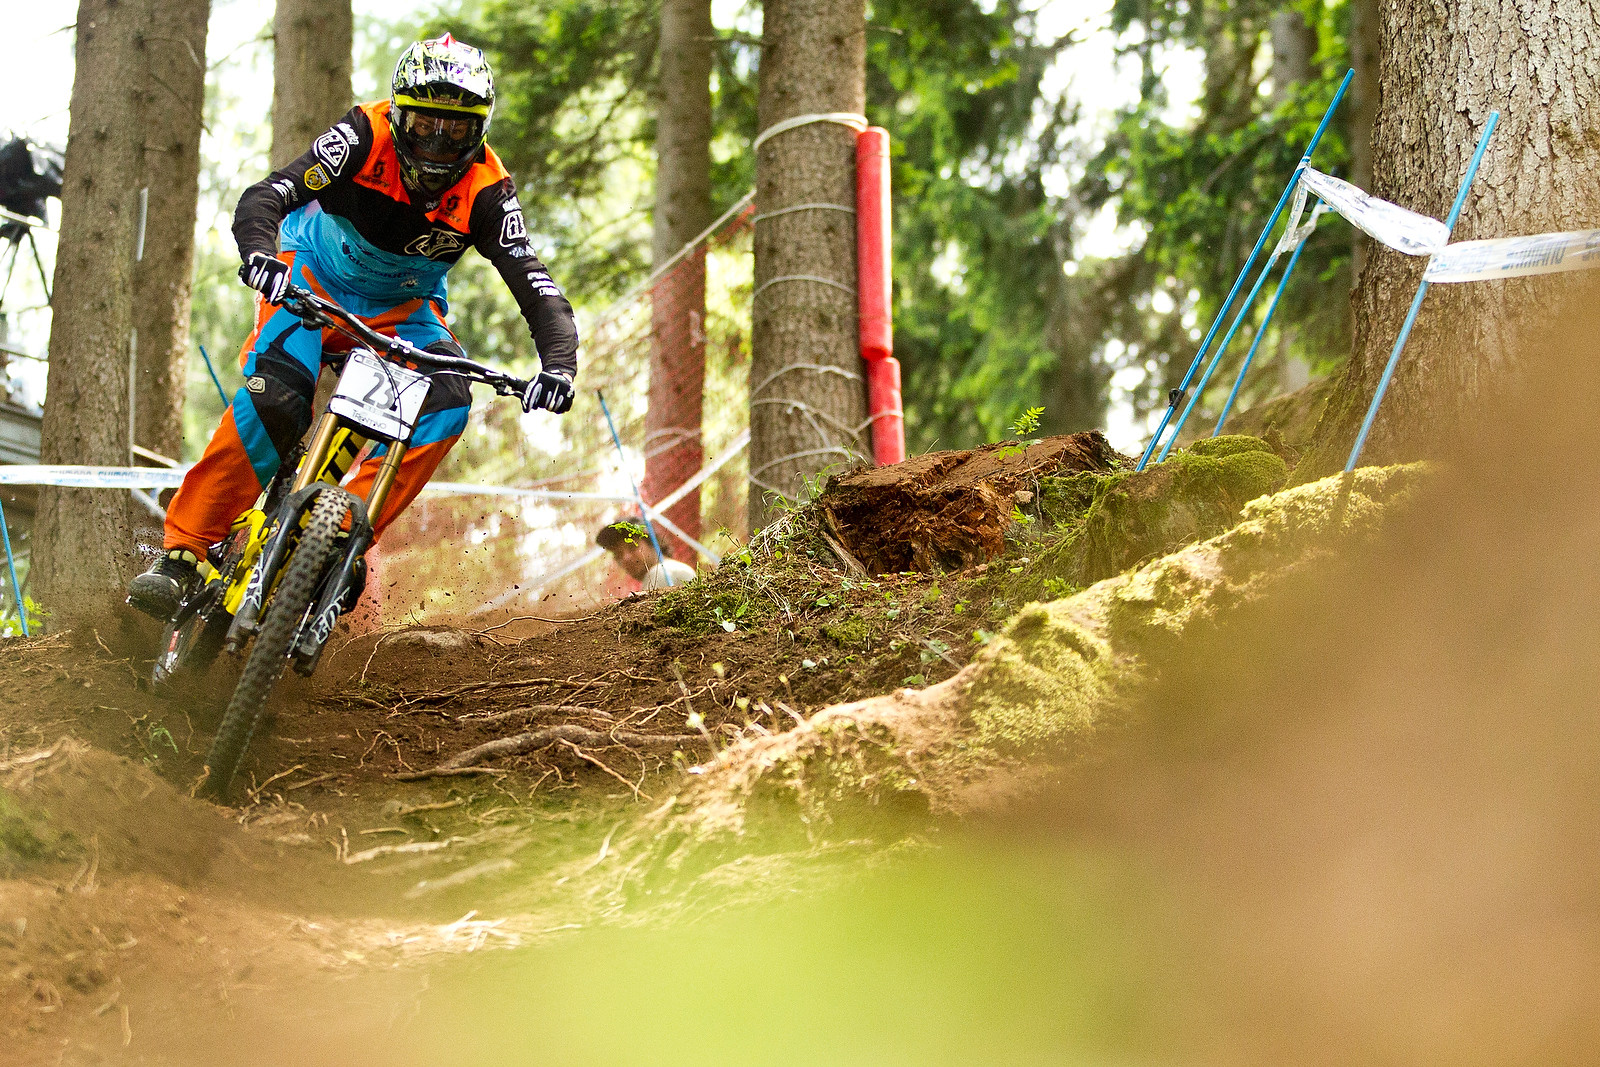 Brendan Fairclough Roosting at Val di Sole - 2012 UCI World Cup, Val di Sole Day 2 - Mountain Biking Pictures - Vital MTB